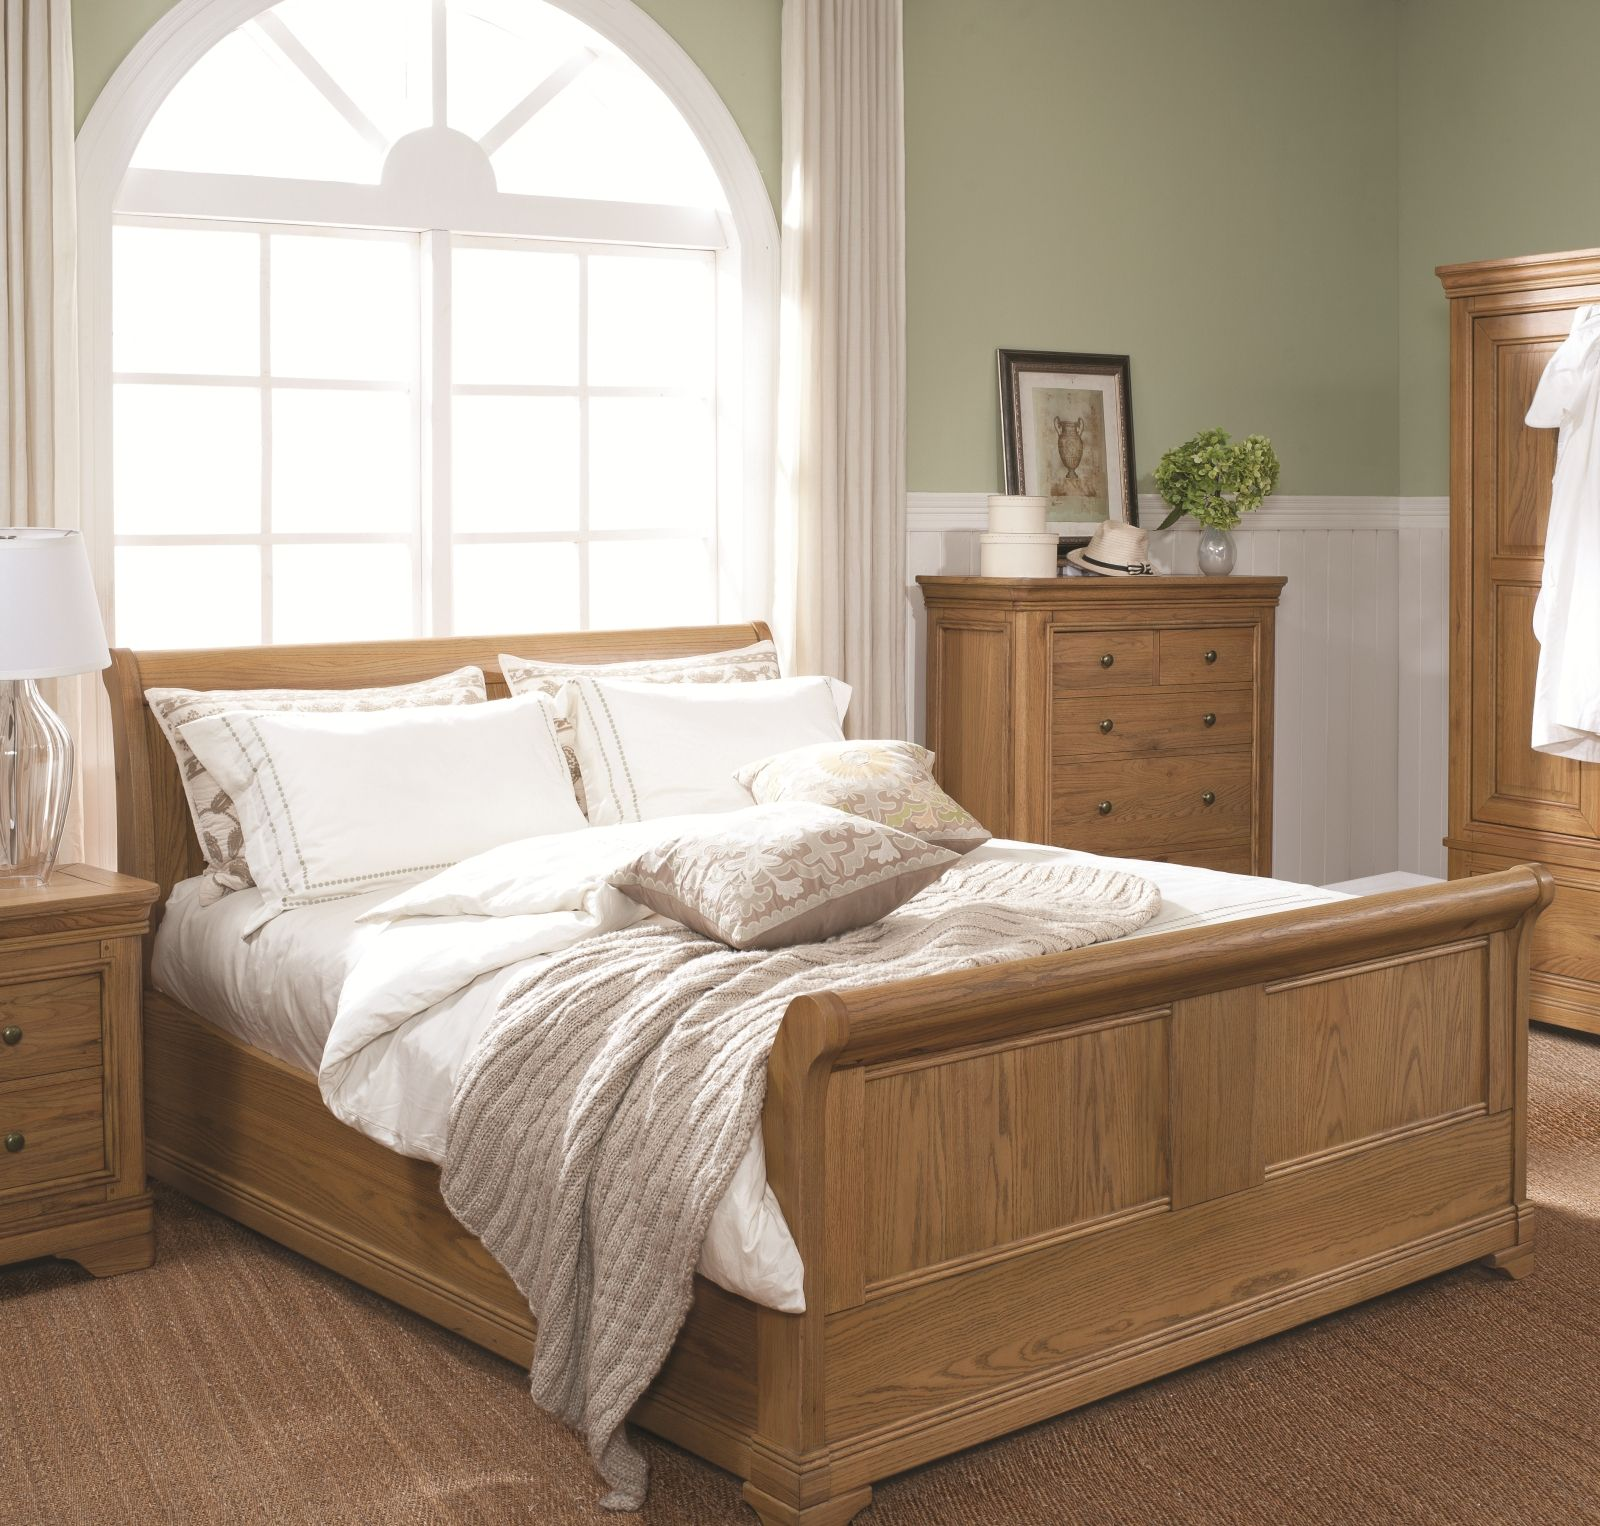 sleigh beds oak bedroom furniture white furniture french furniture